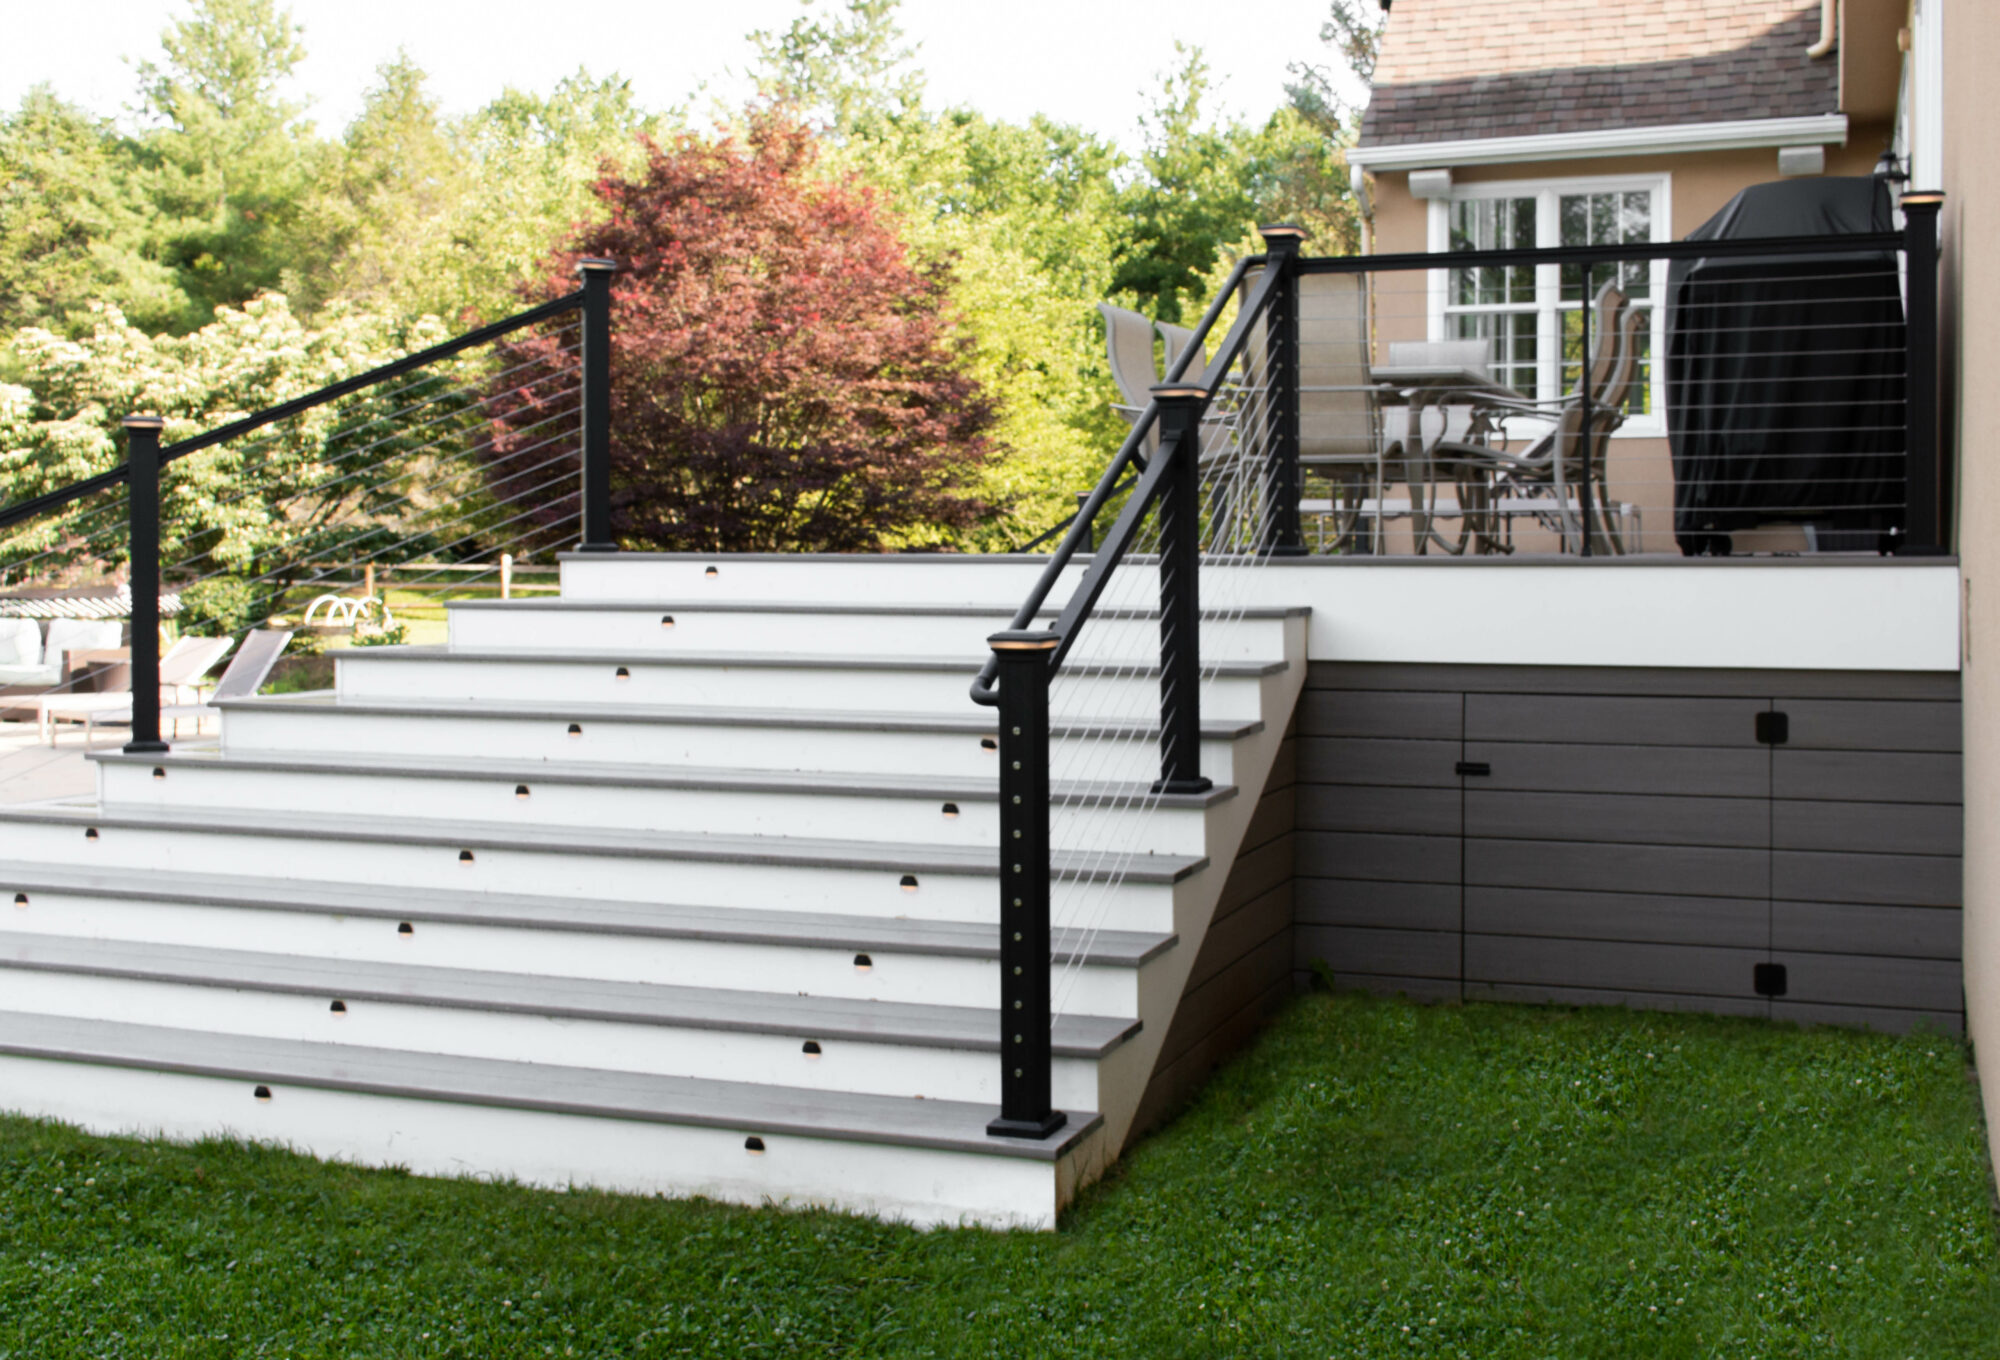 Azek deck with cable railing